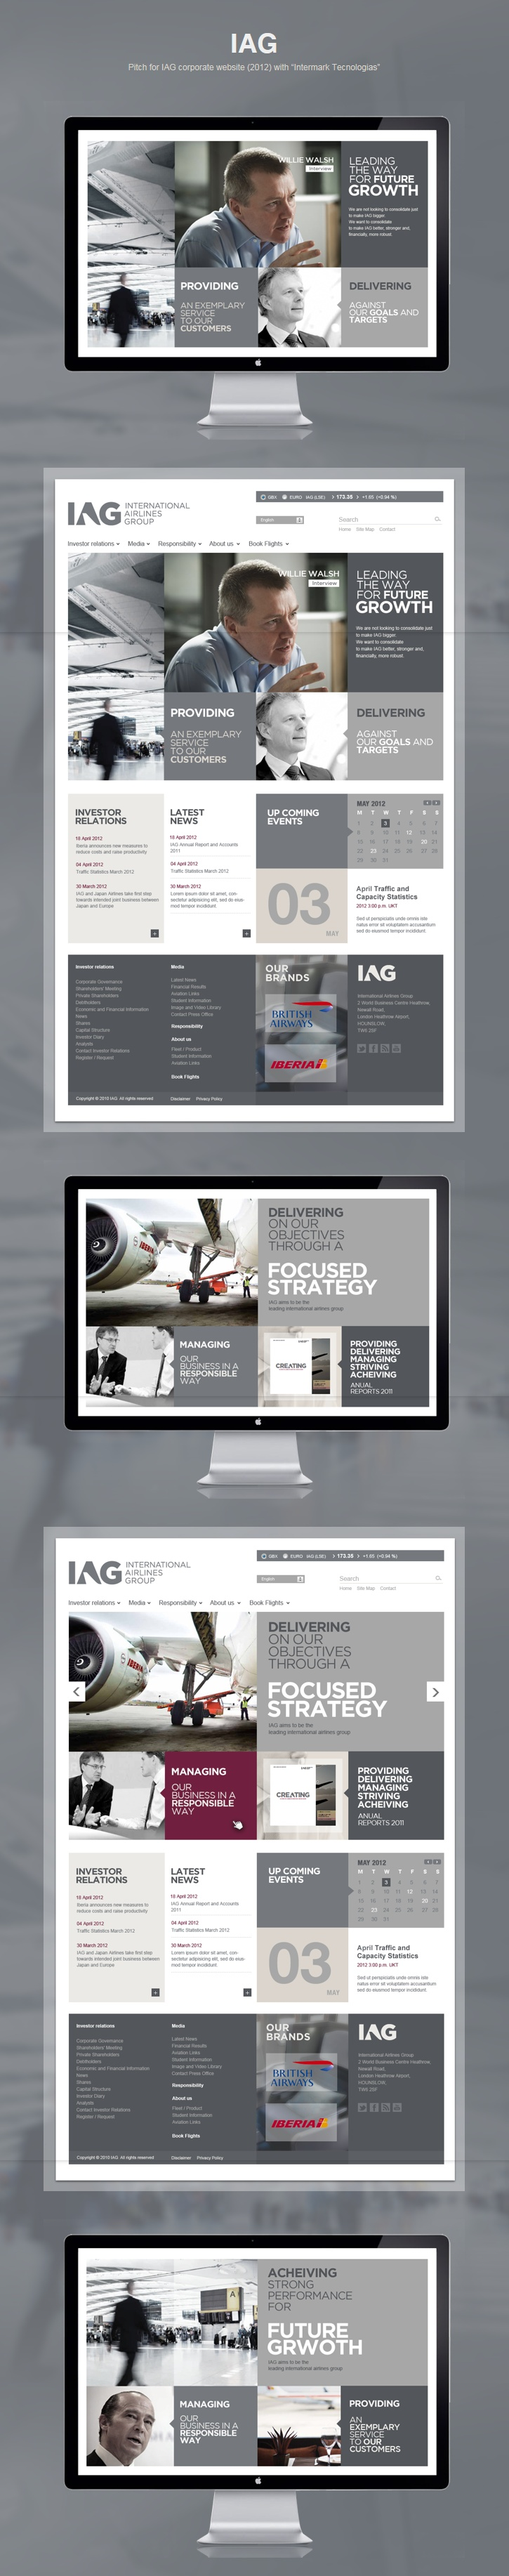 Website Design - use more pictures and get and fill space with customer testimonials / data at work stats